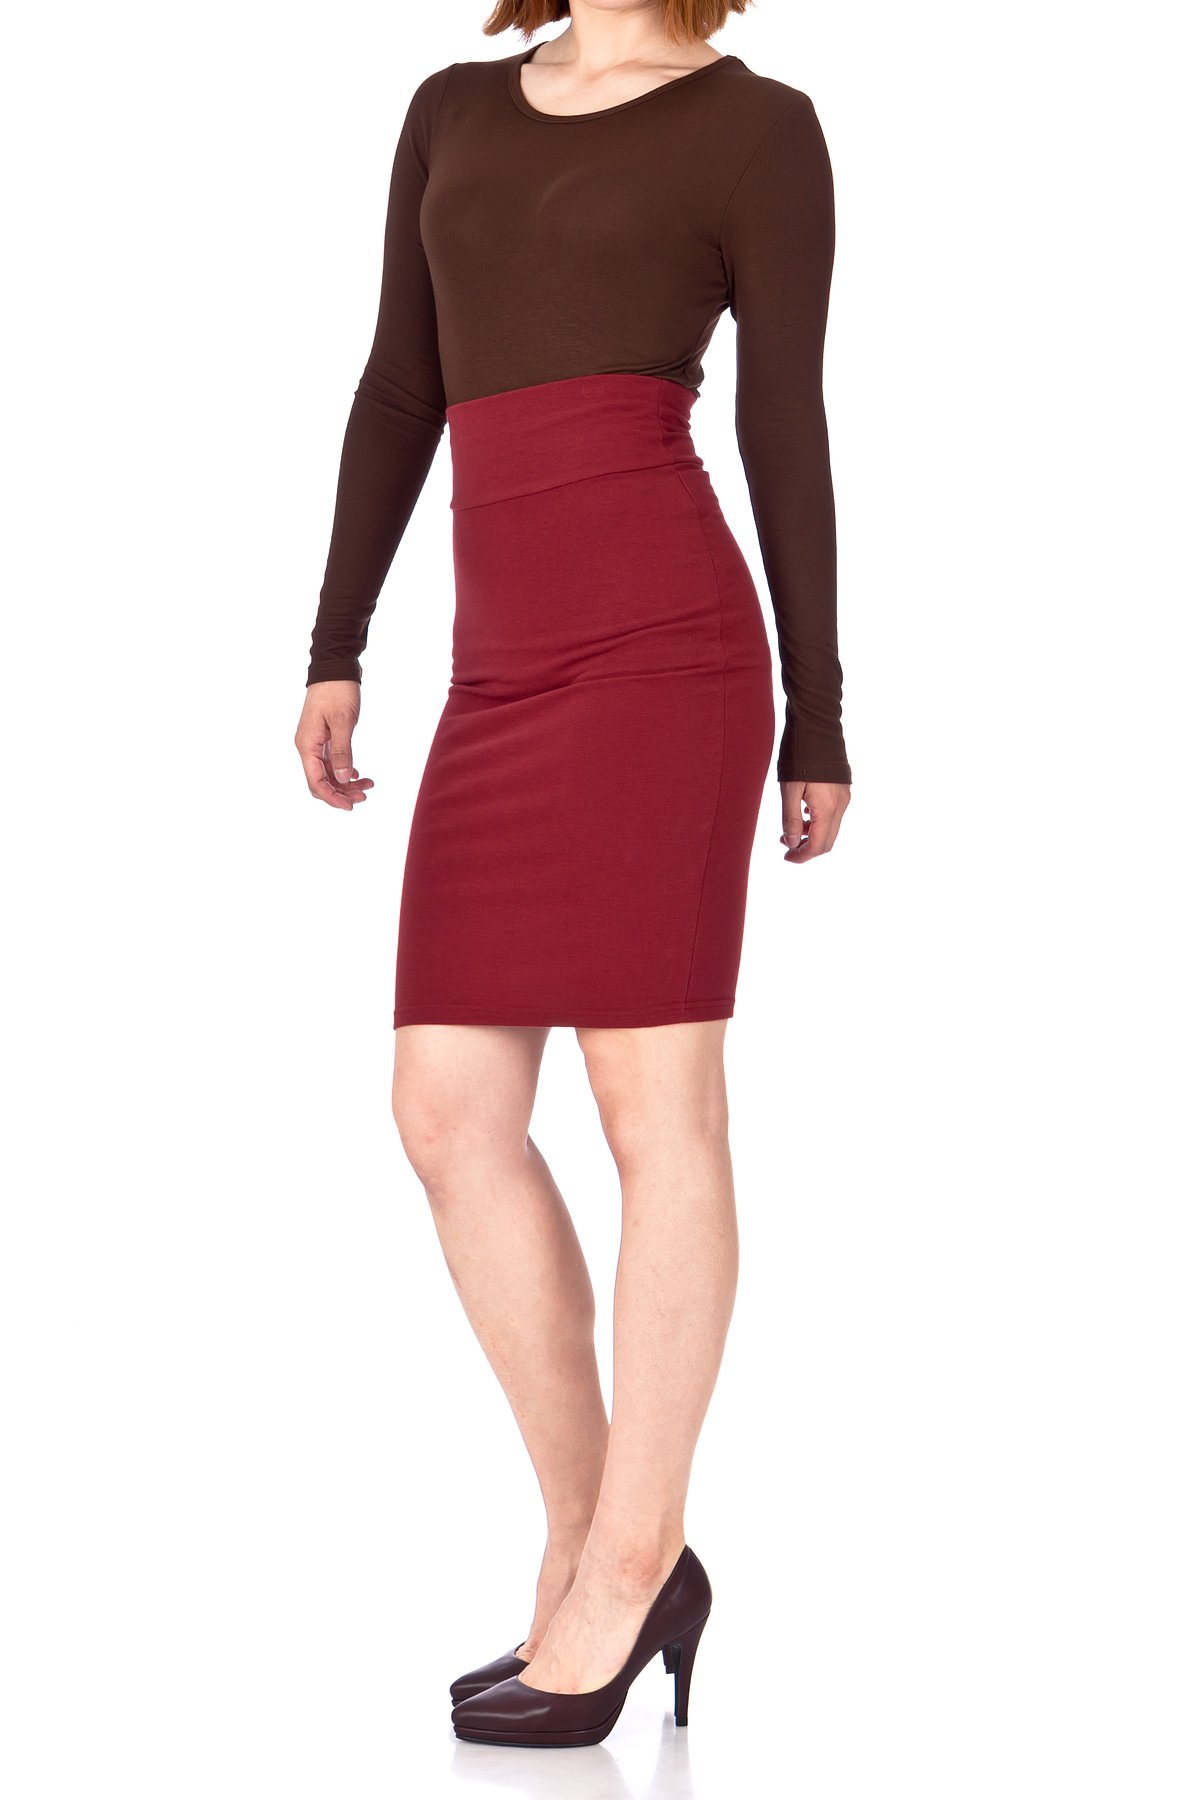 Every Occasion Stretch Pull on Wide High Waist Bodycon Pencil Knee Length Midi Skirt Burgundy 03 1